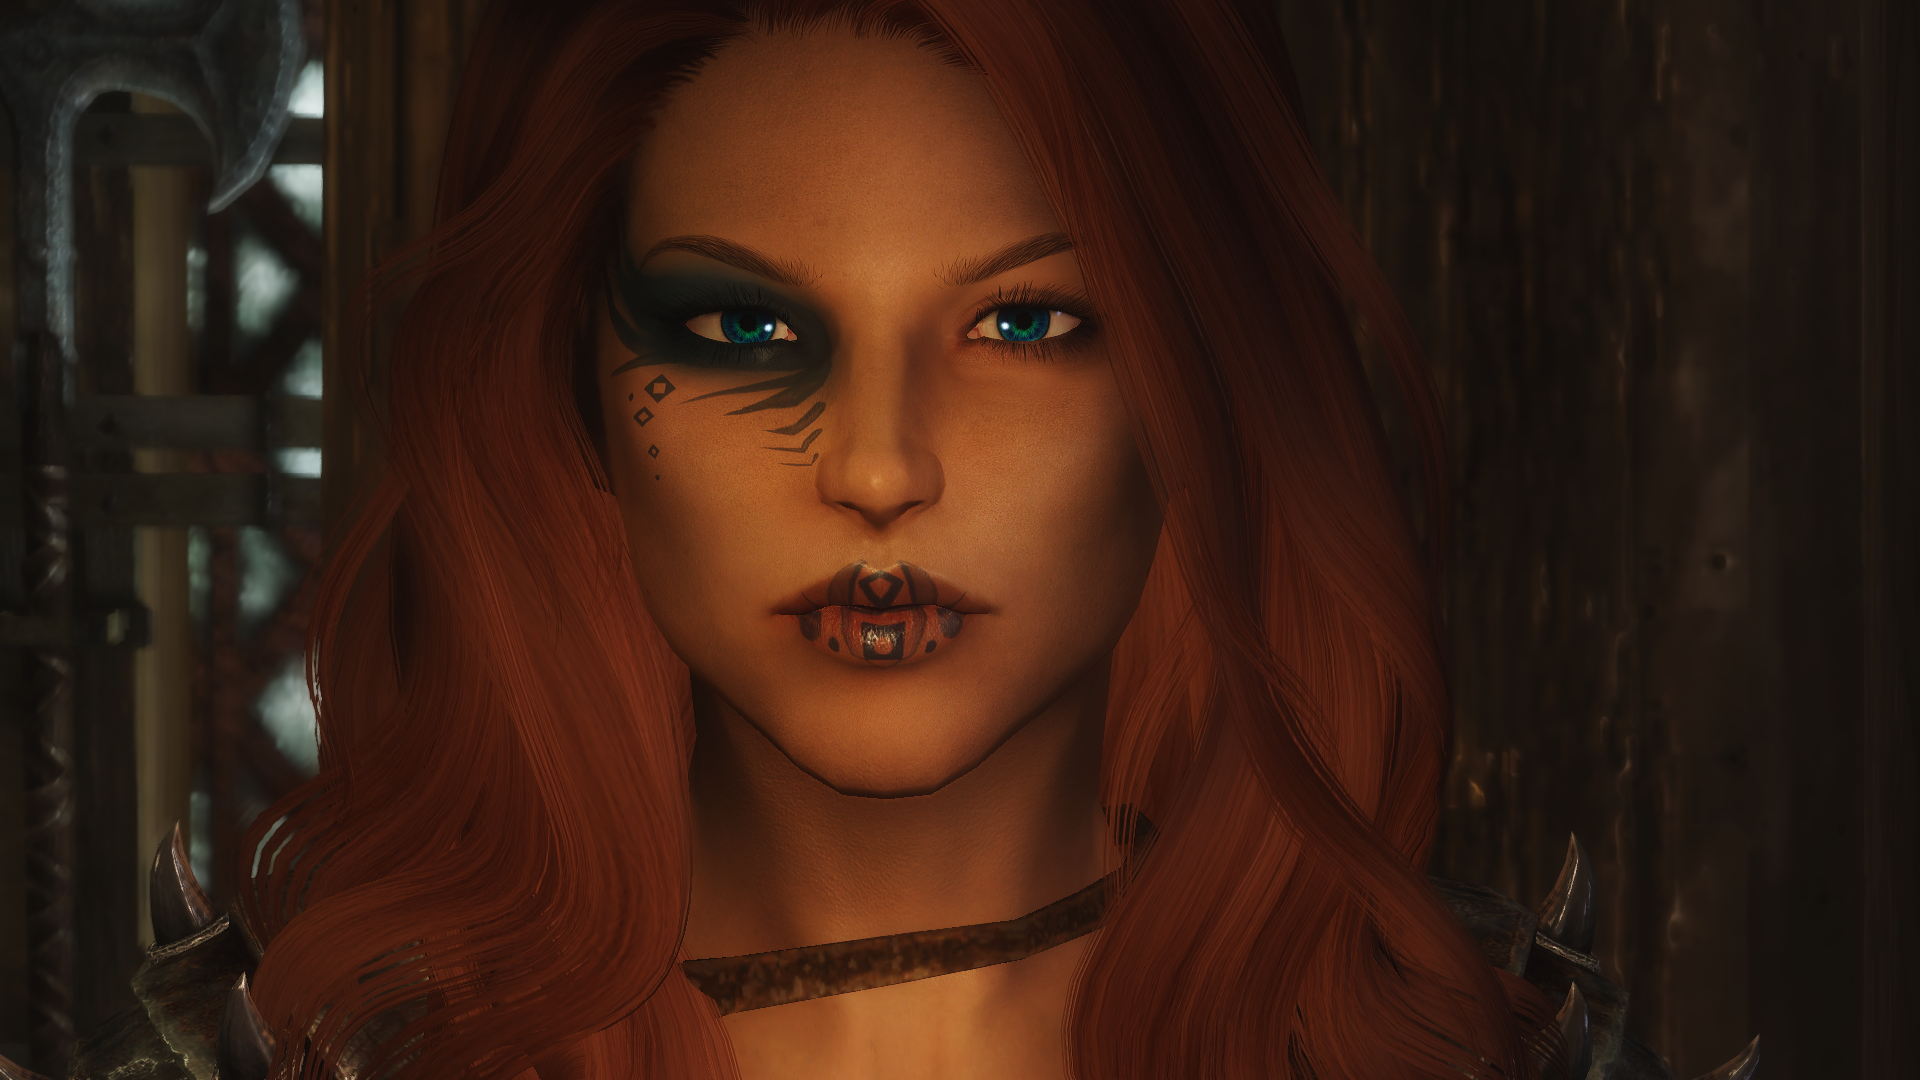 Skyrim aela the huntress marriage benefits in the navy